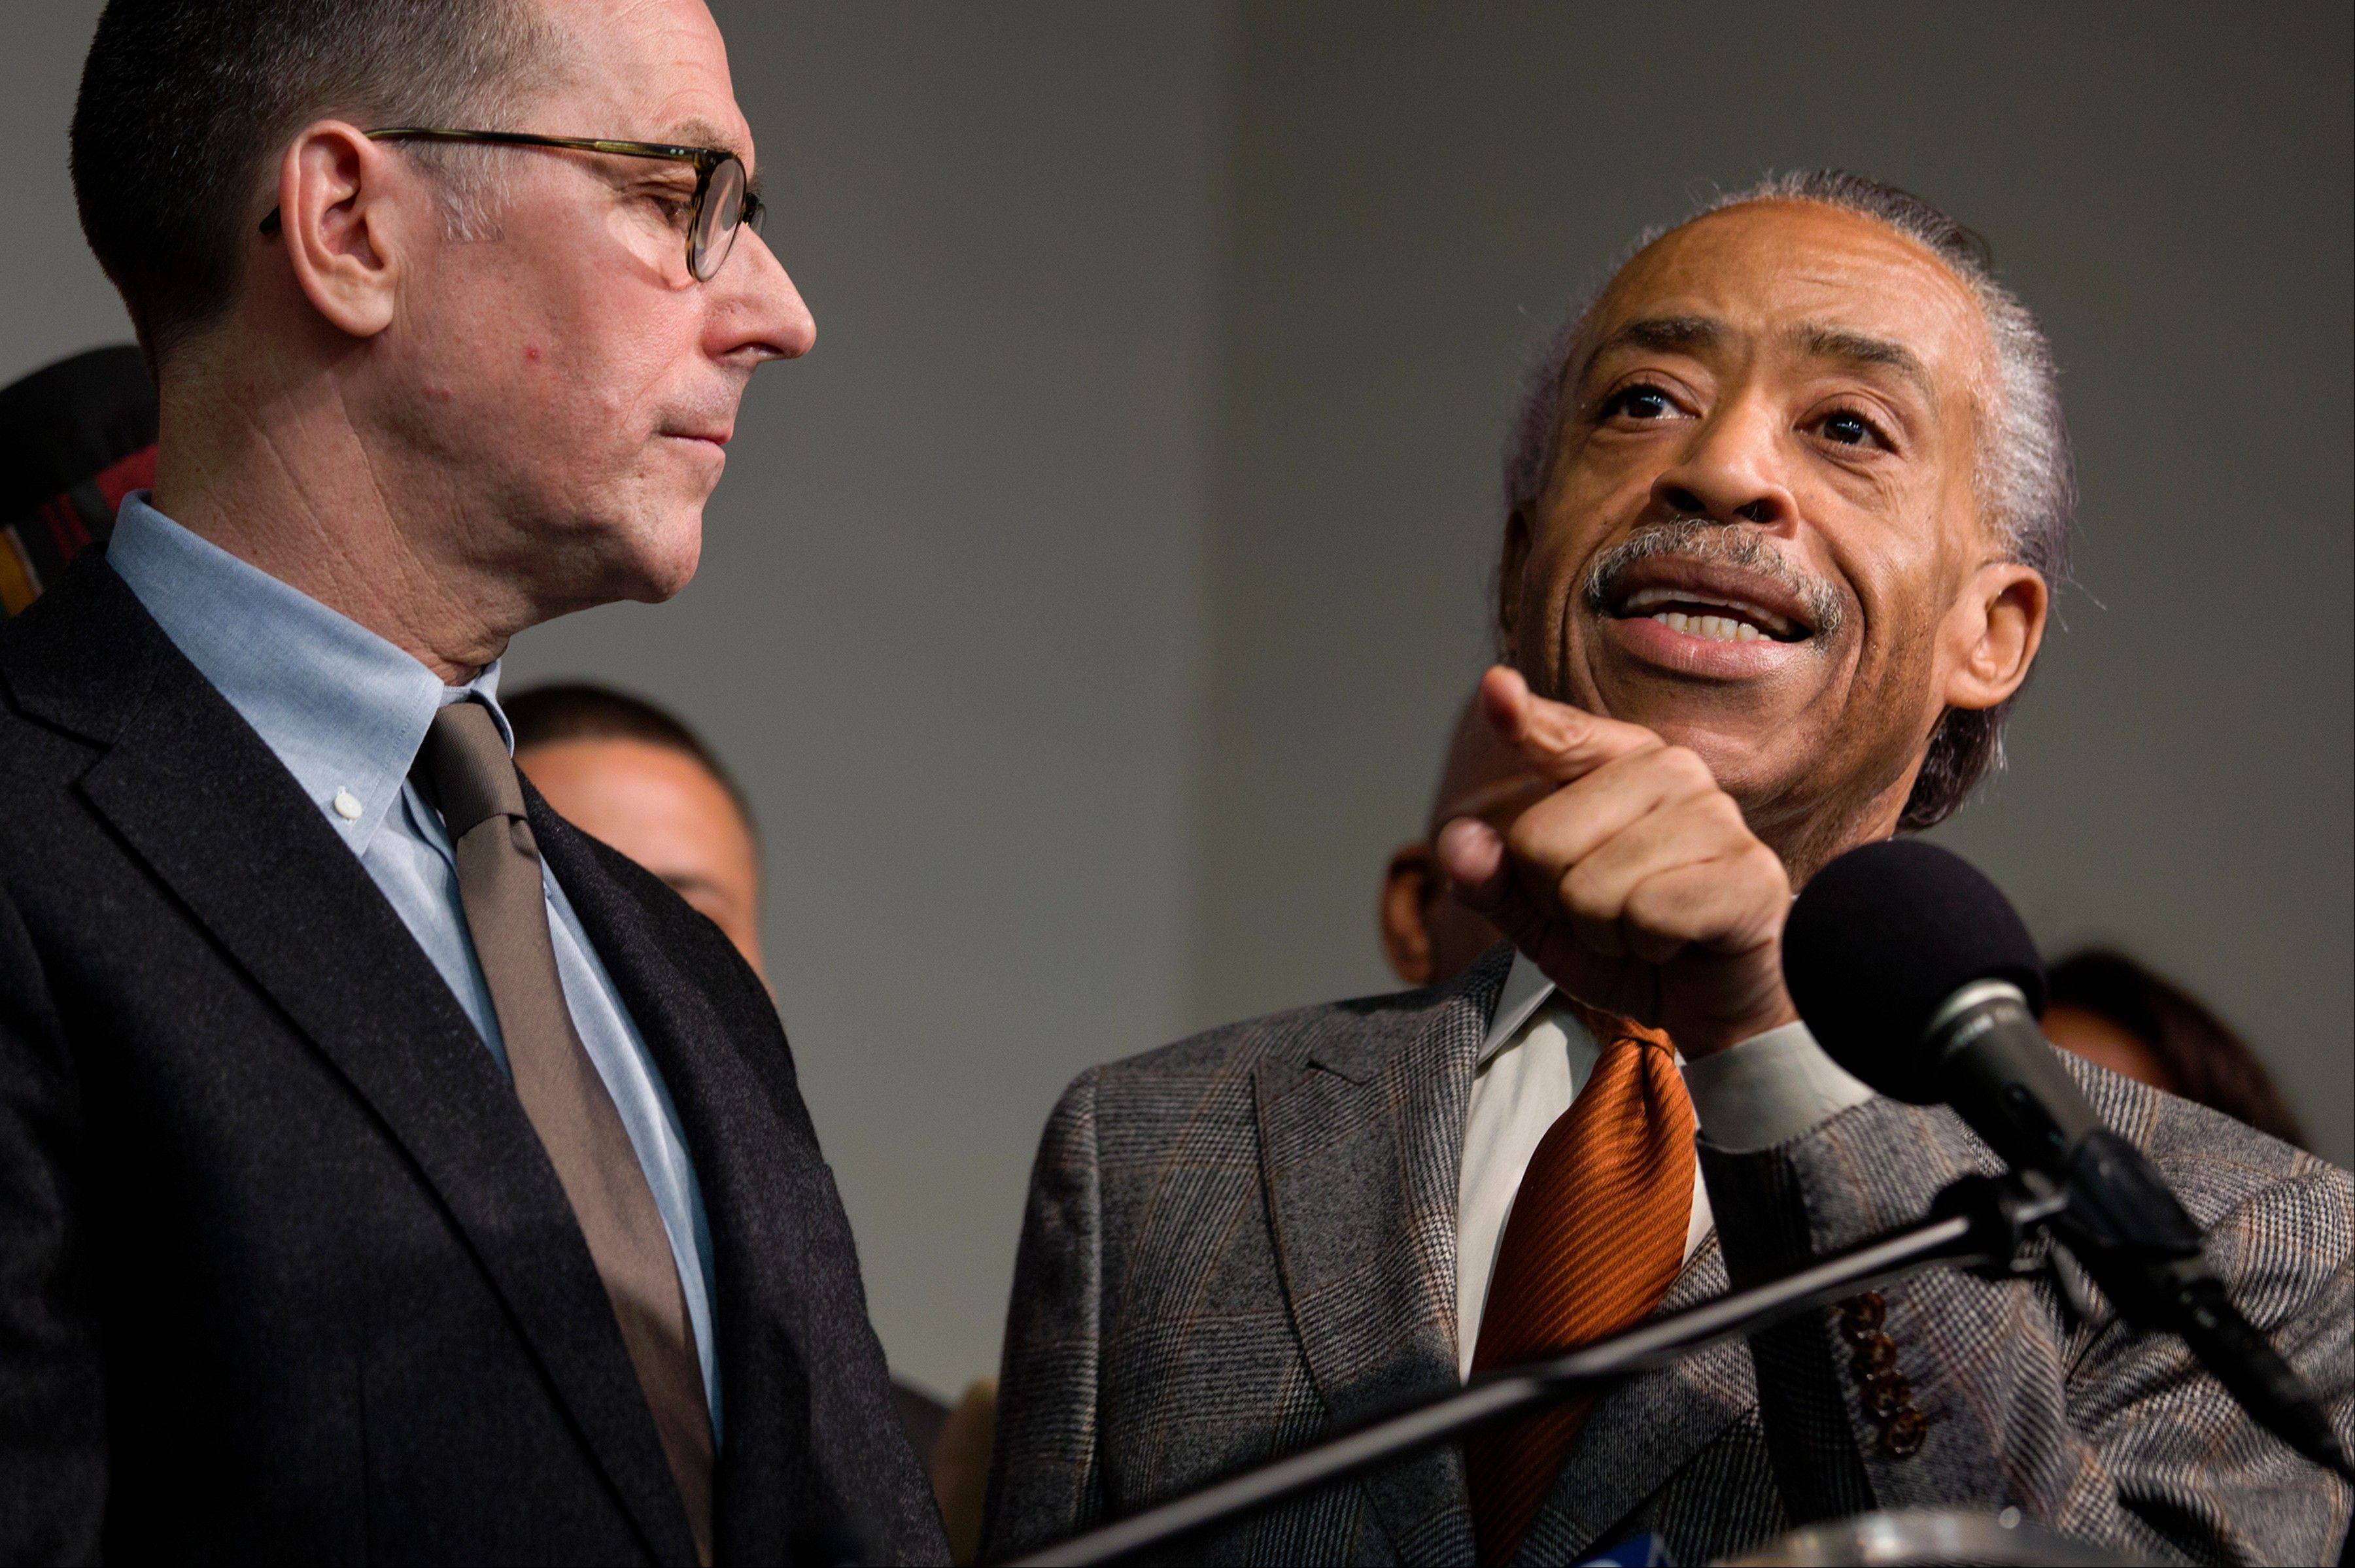 The Rev. Al Sharpton, standing with Mark Lee, left, CEO of Barneys New York, addresses member of the media, at the National Action Headquarters in New York, after they and other community leaders discussed allegations of racial profiling. Two black customers recently claimed they were detained by police on suspicion of credit card fraud after lawfully purchasing expensive items.